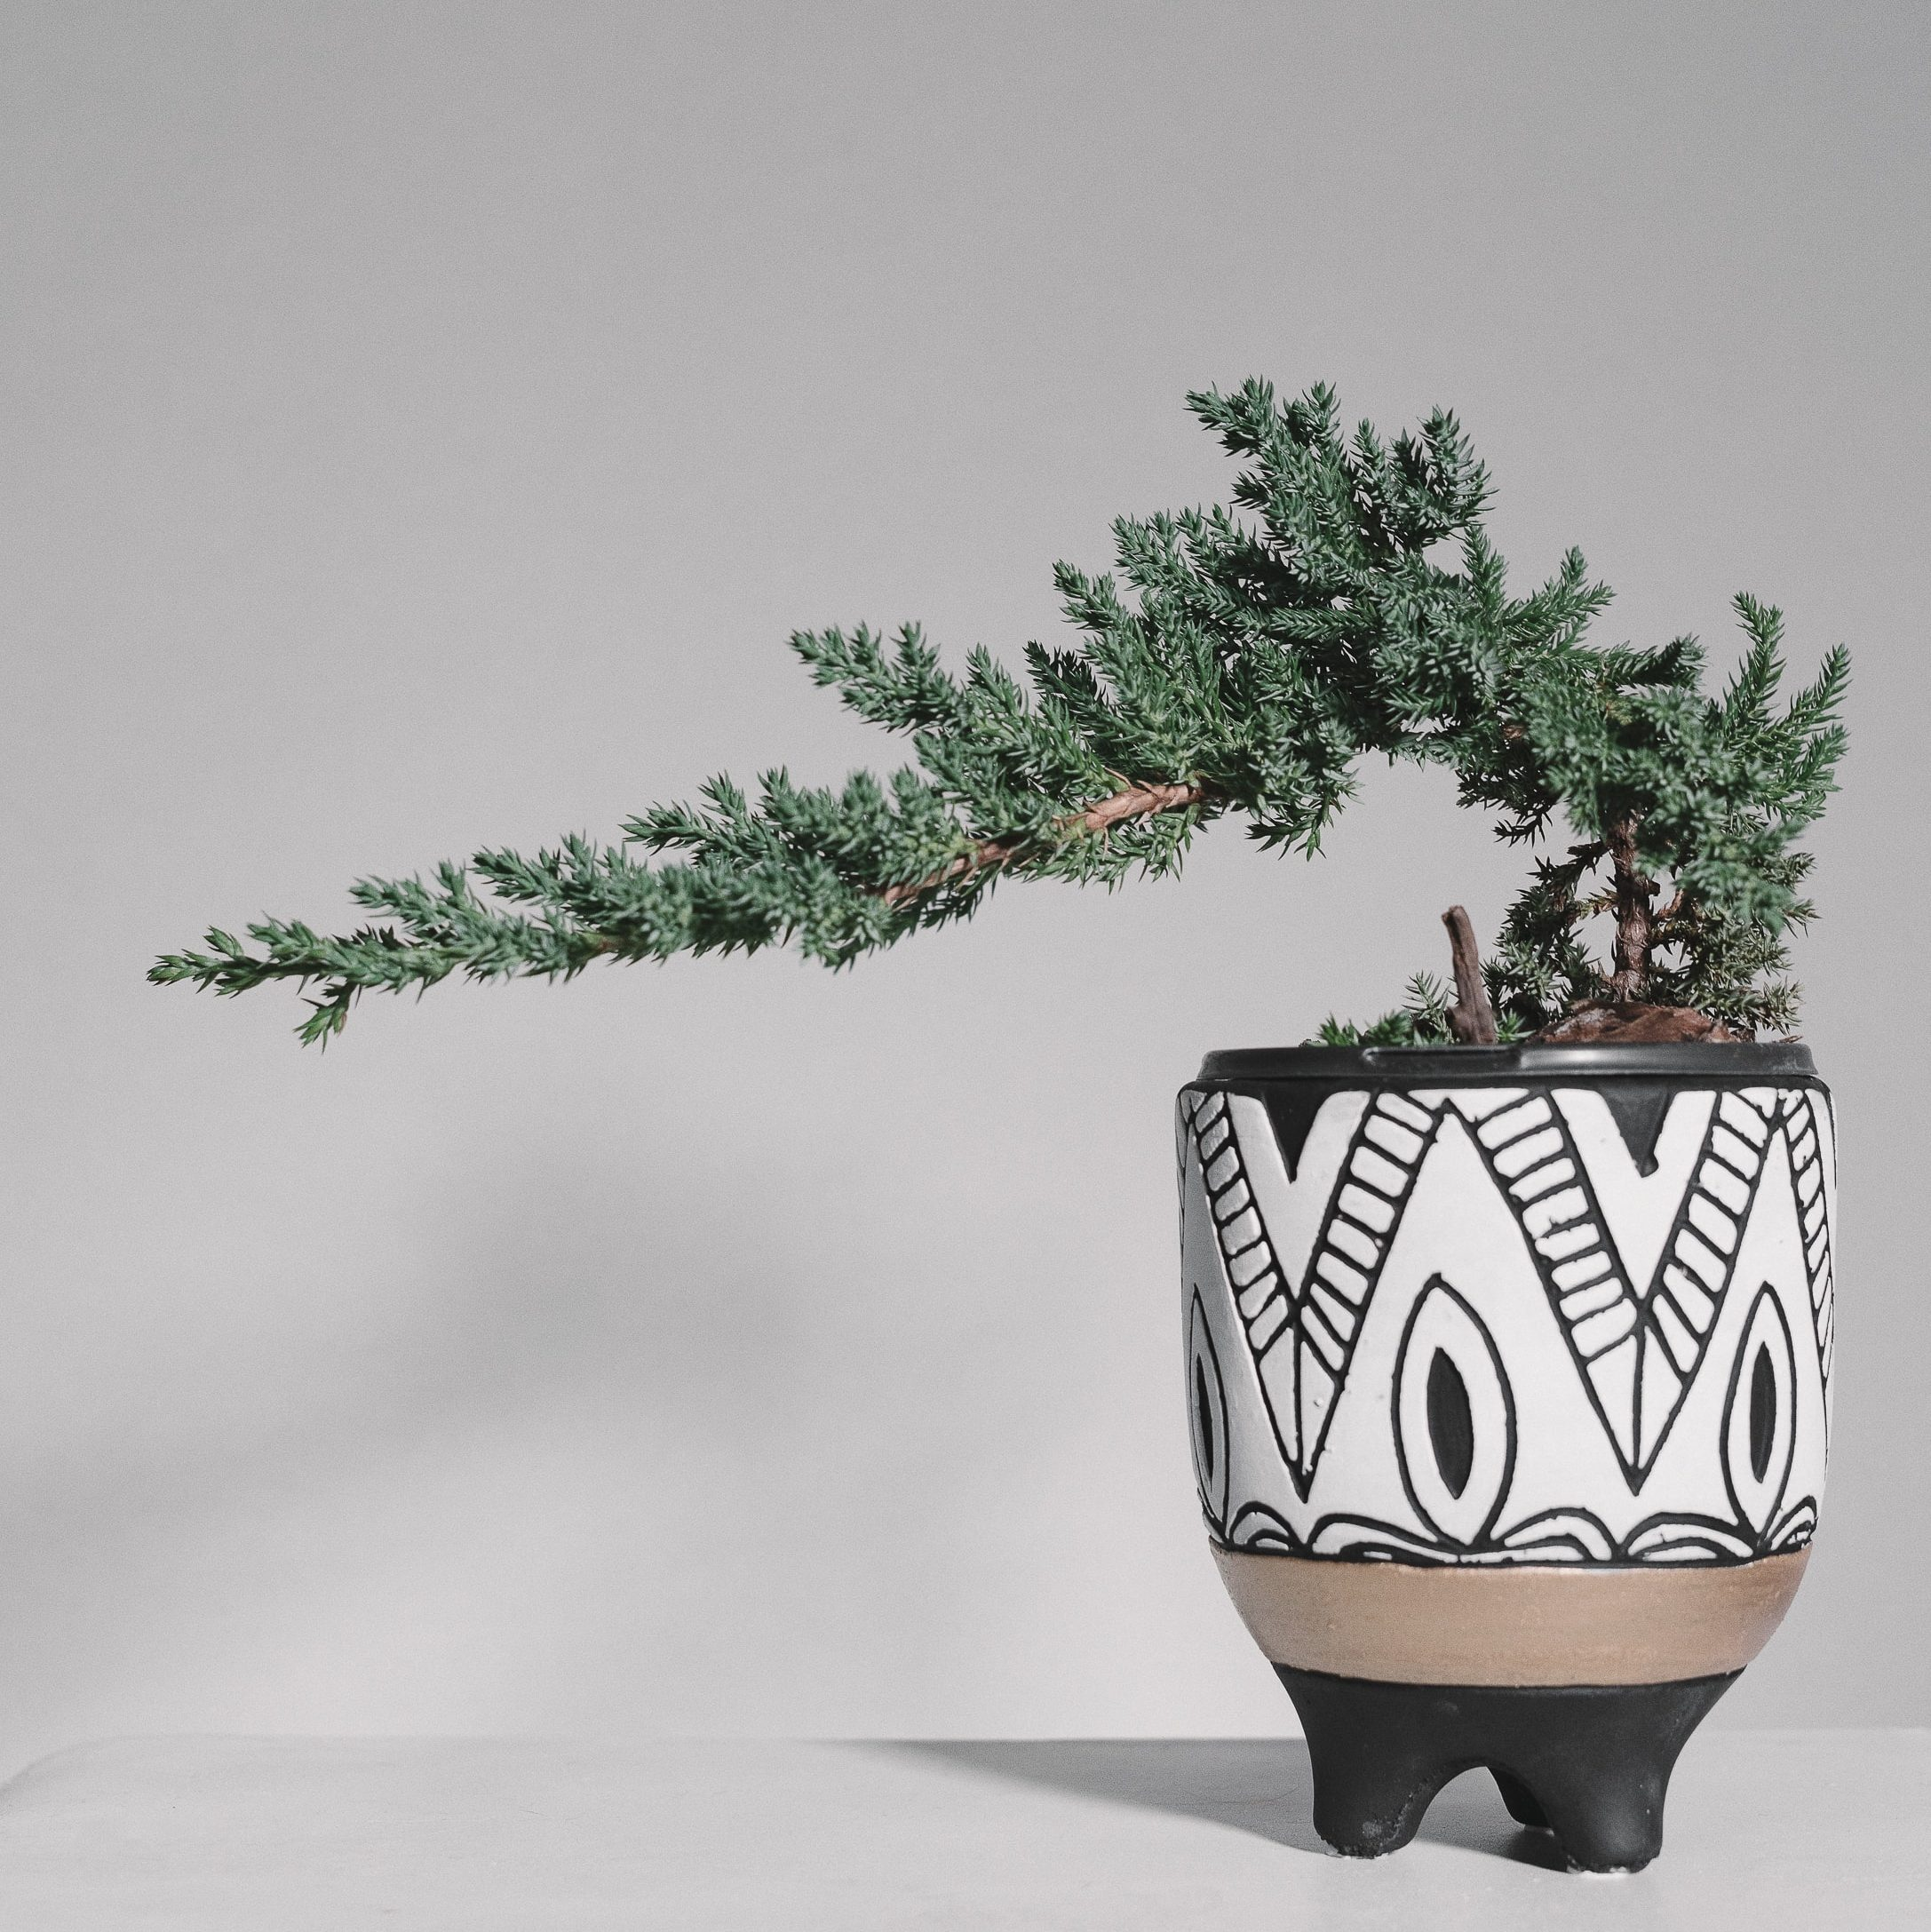 Creating interesting shapes with pruning